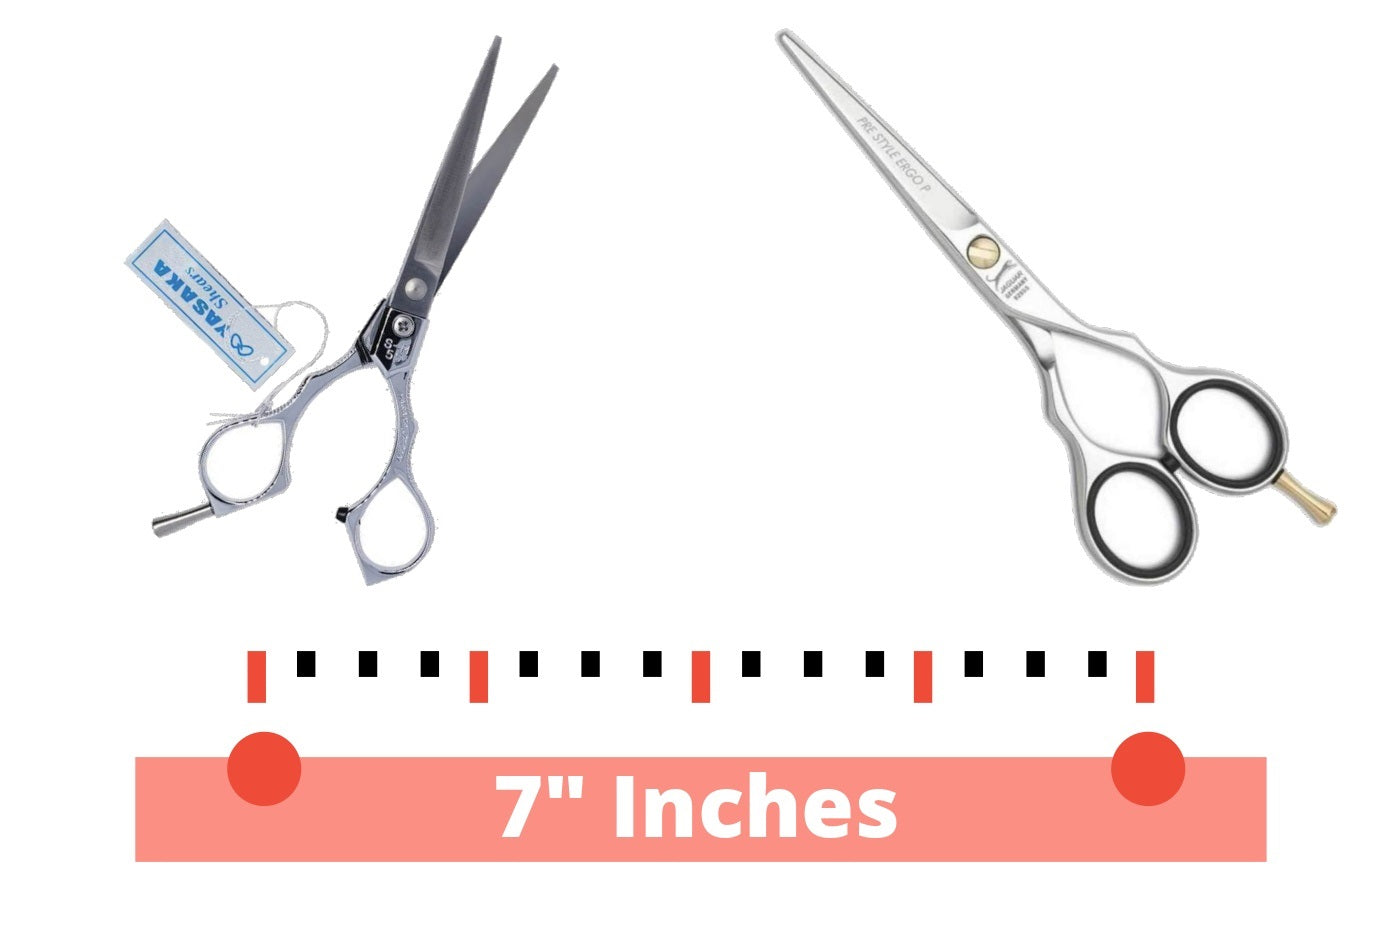 Our 7 Inch Scissors Selection